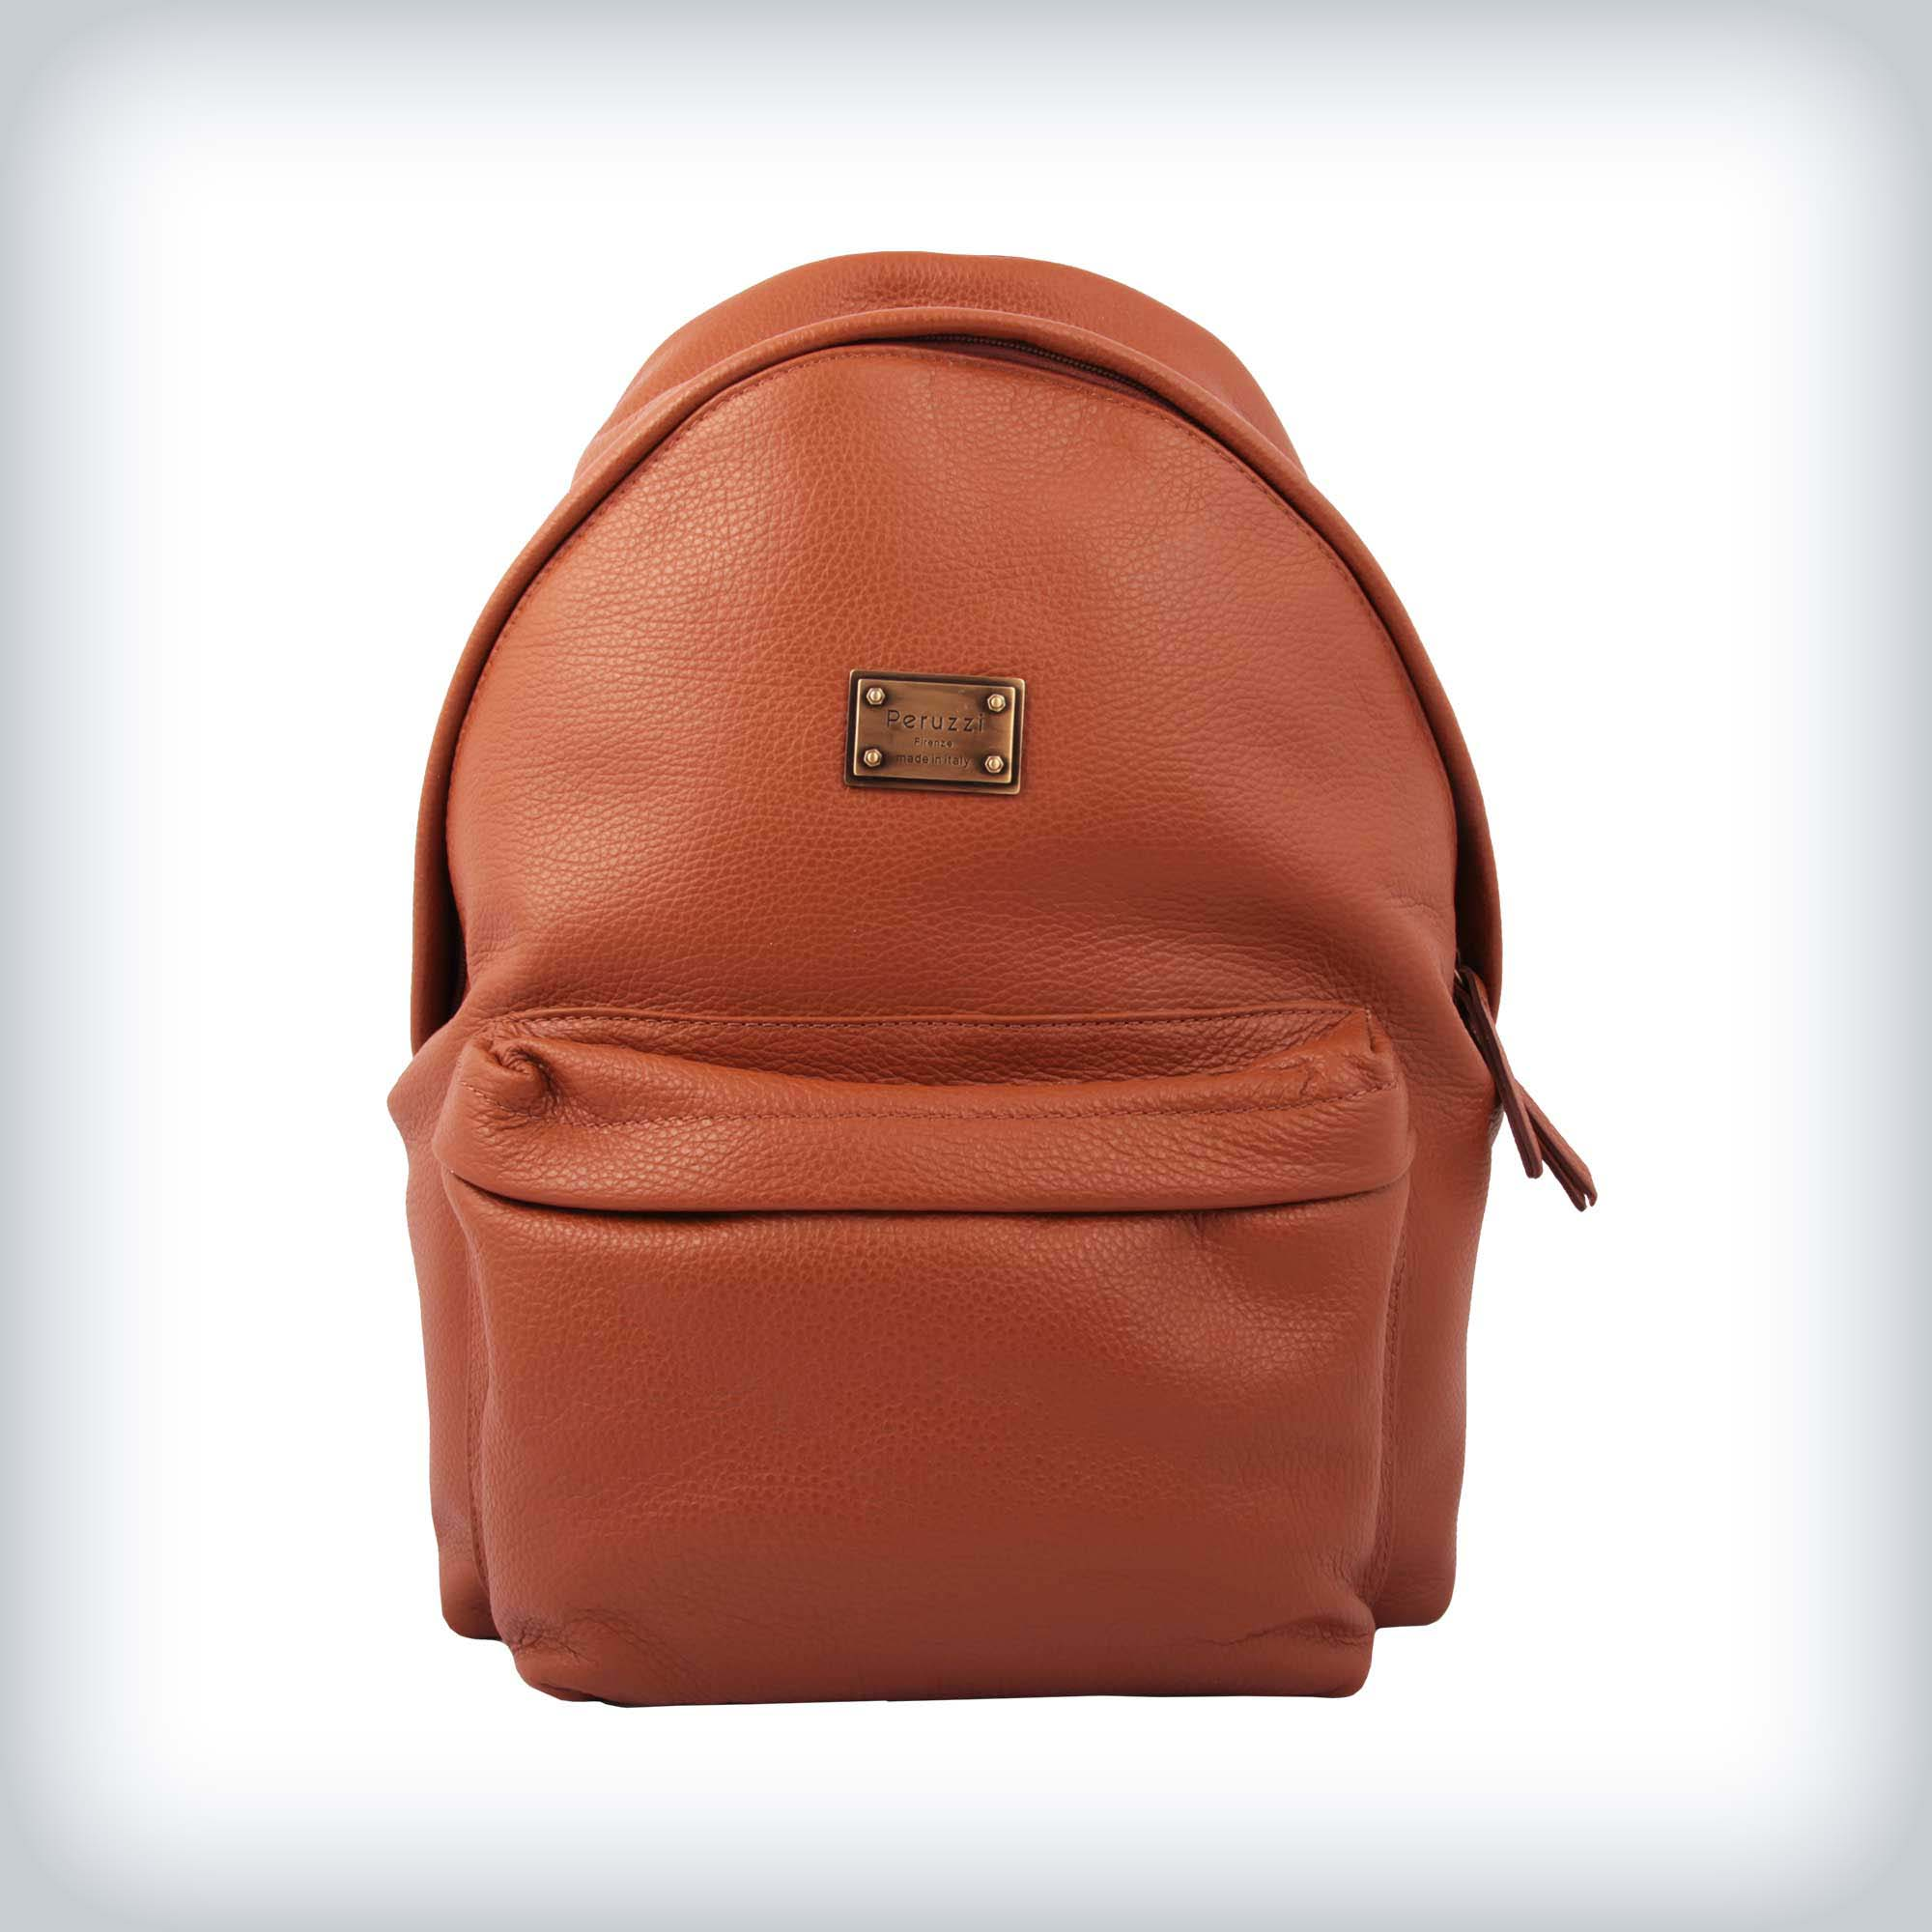 Leather Backpack Peruzzi